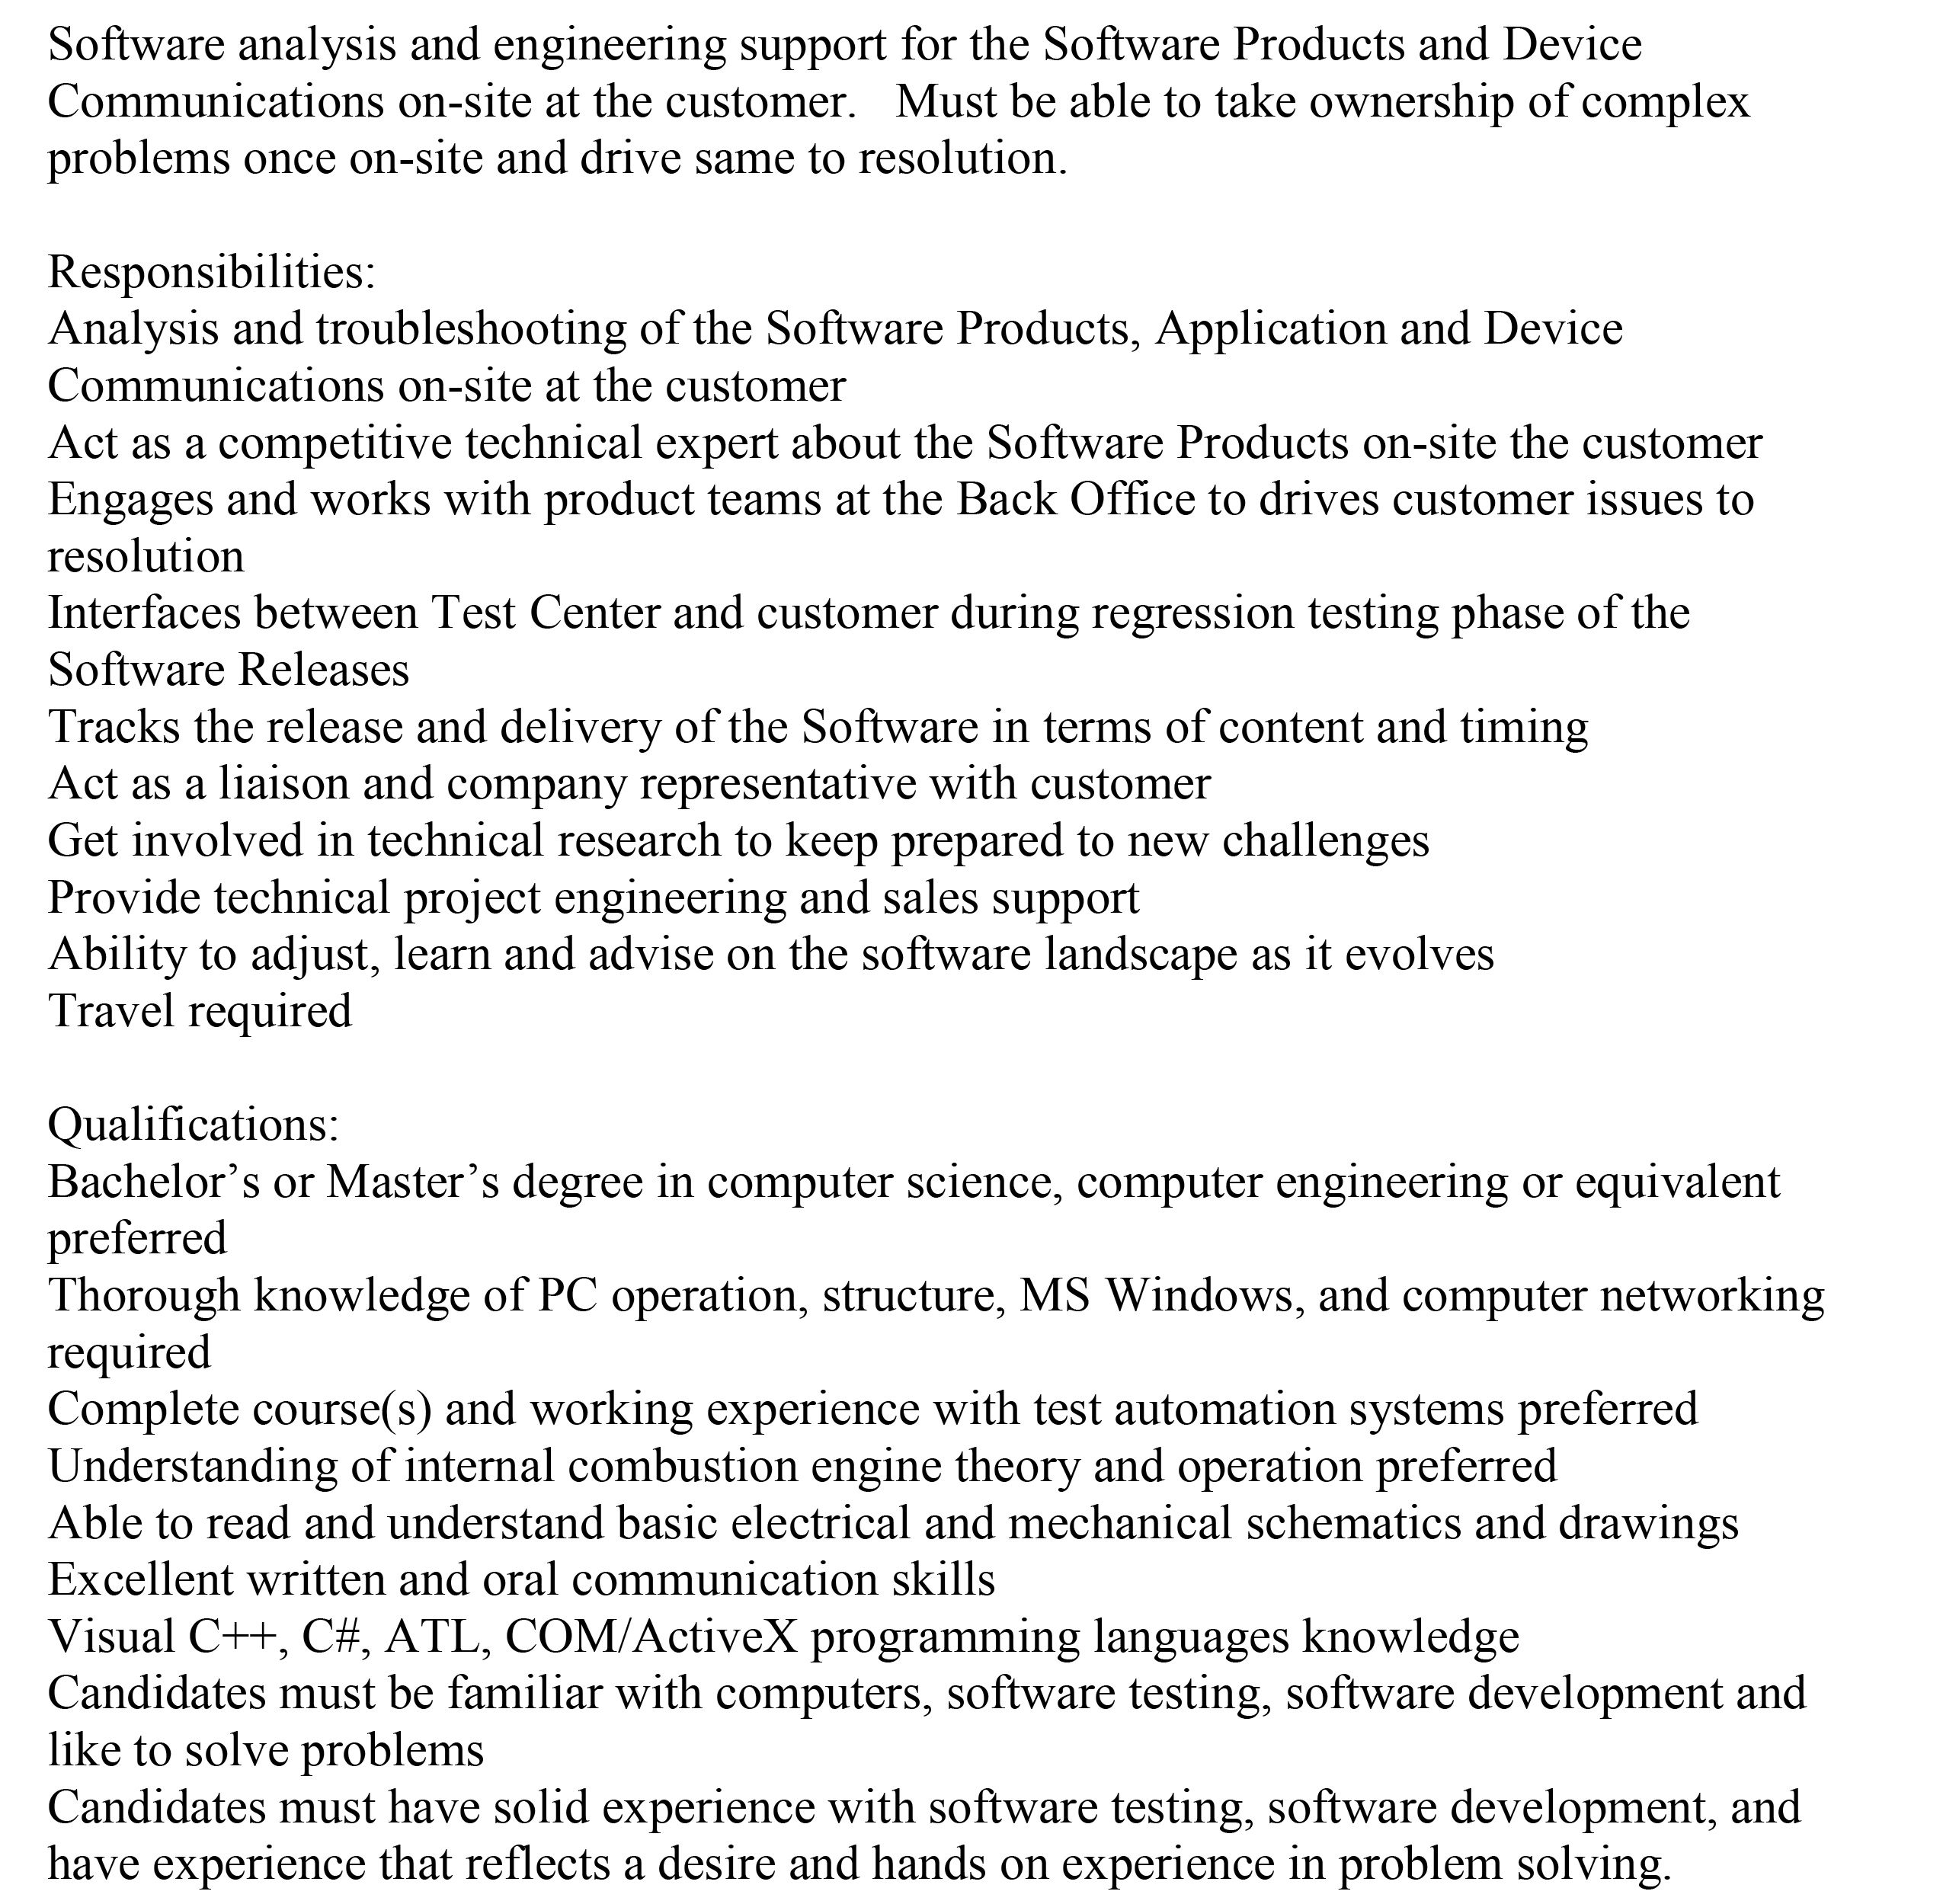 Senior Software Engineer If you are interested in this